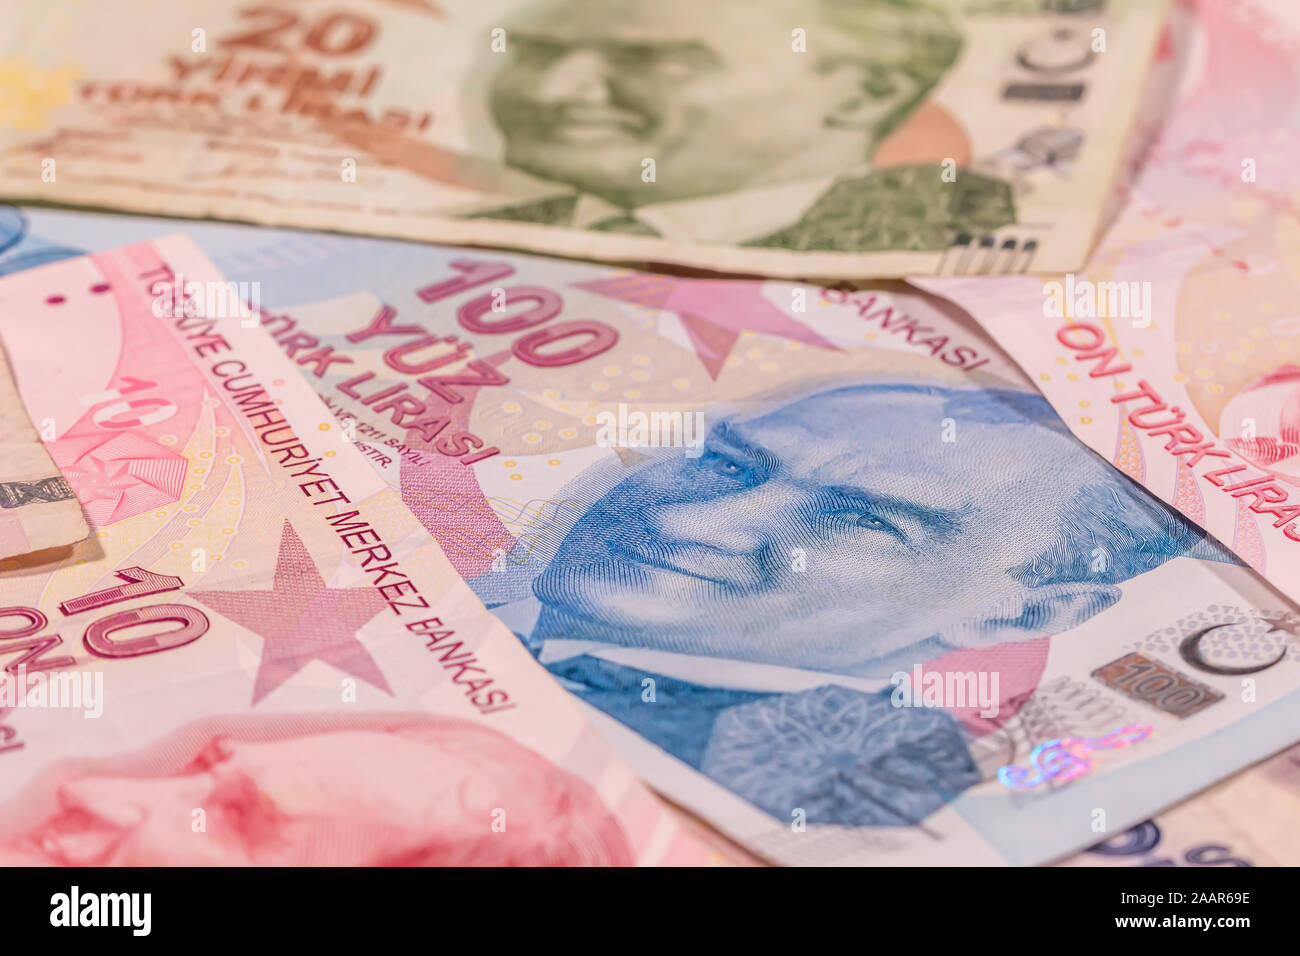 A composition of Turkish lira TL. TRY banknotes providing great options to be used for illustrating subjects as business, banking, media, etc. Stock Photo